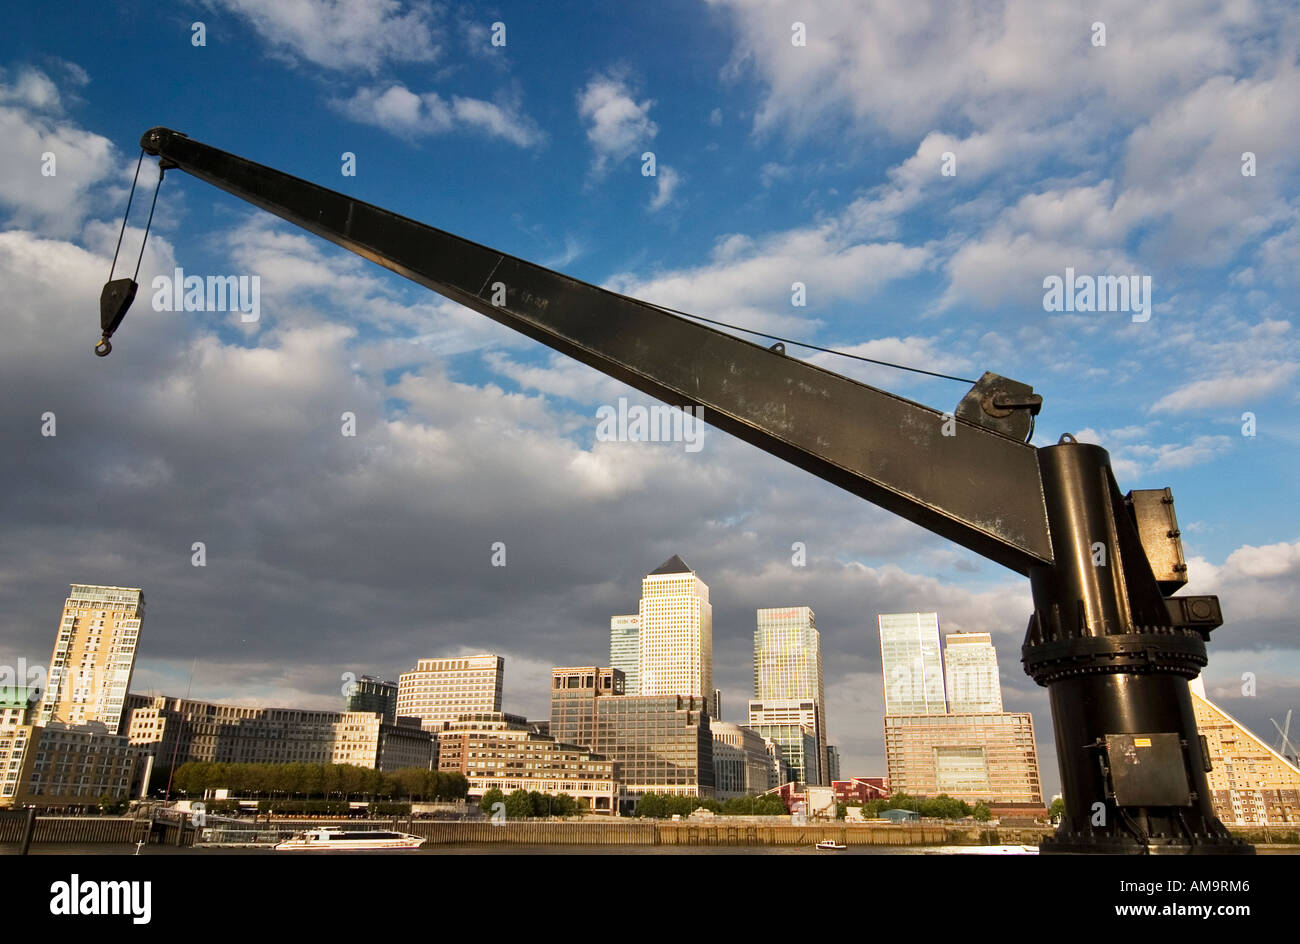 View through a winch across River Thames towards Canary Wharf complex Docklands London - Stock Image